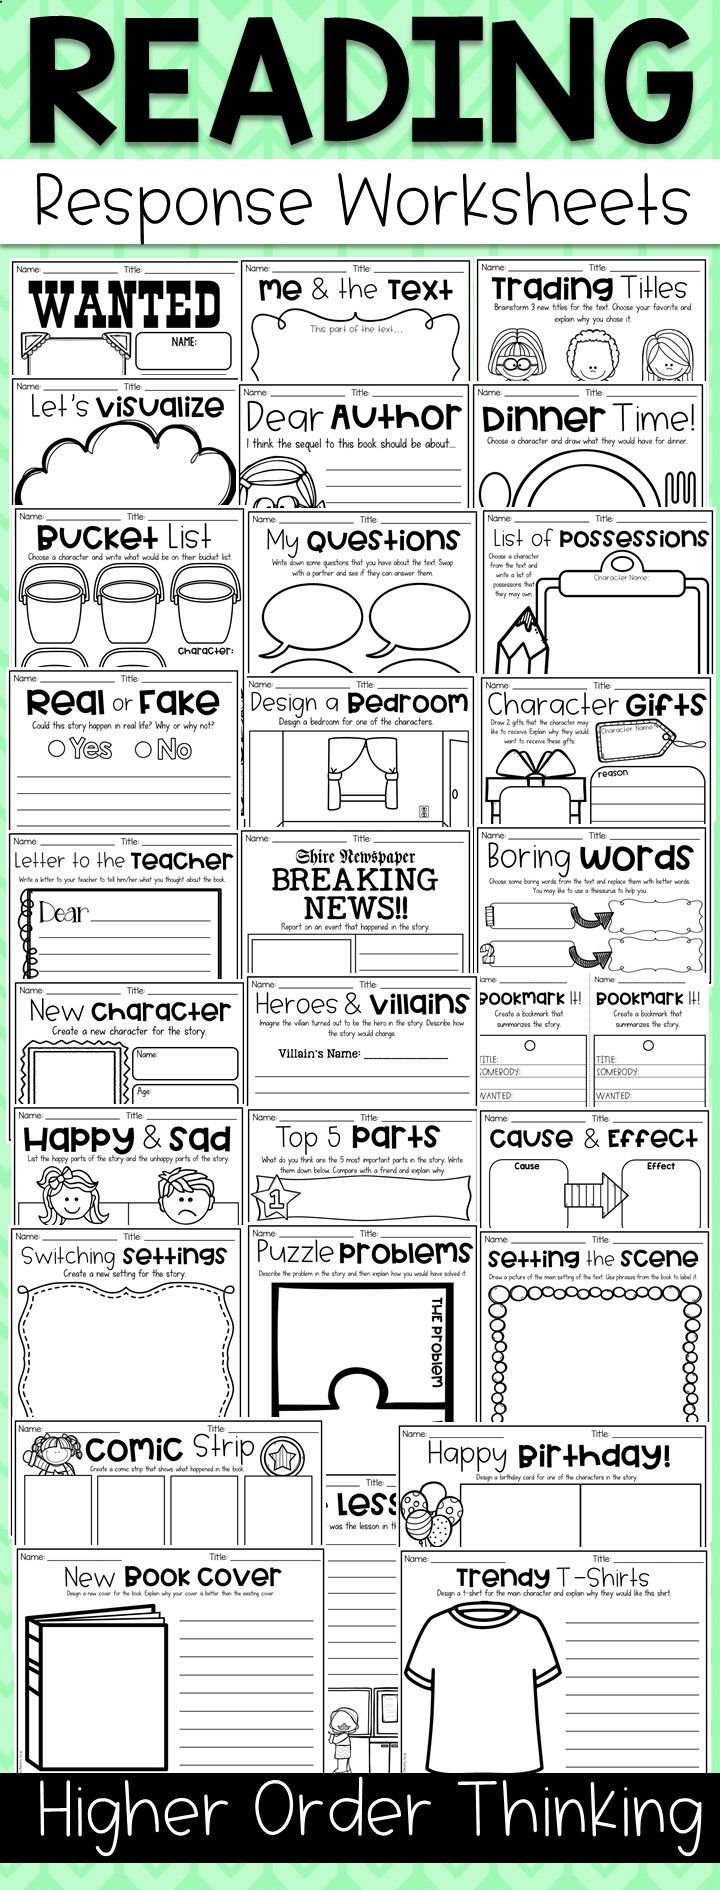 worksheet Reading Response Worksheets teach your child to read higher order thinking reading response worksheets get kiddos creativity flowing with this hots read